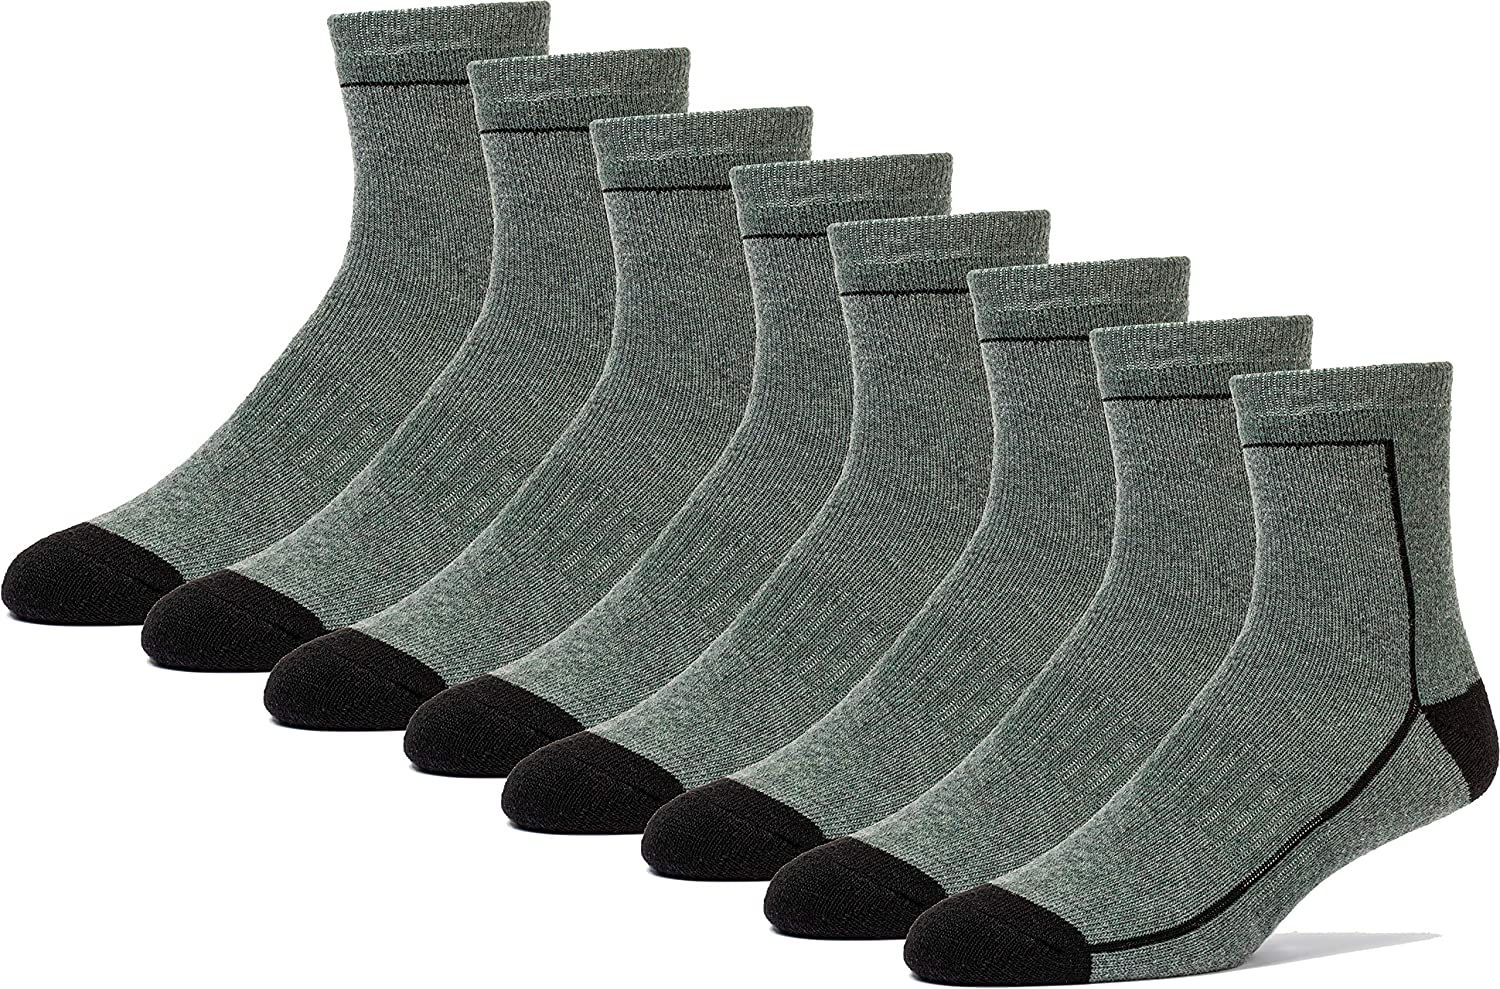 FUN TOES Kids Quarter Merino Wool Socks 4 Pairs Cushioned Arch Support Ideal For Hiking Skiing